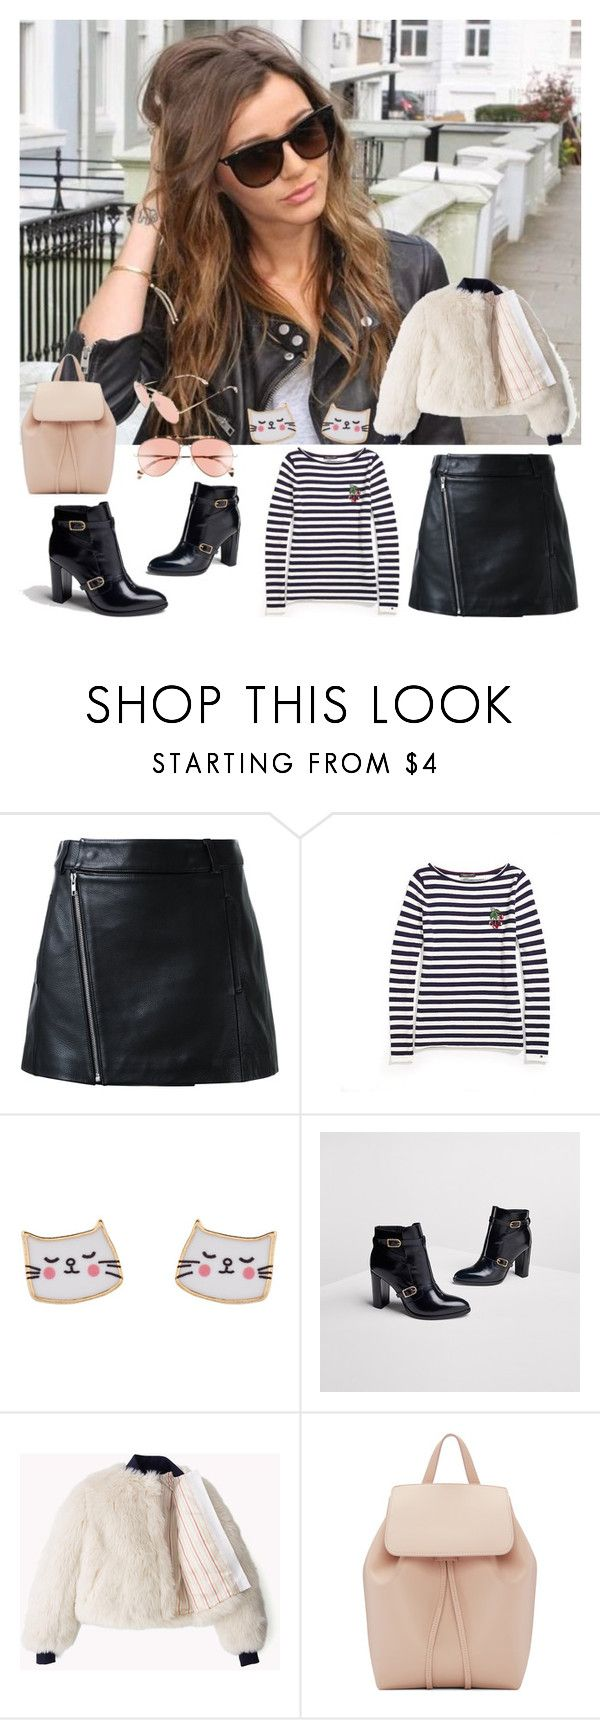 ECL_TH by stepehi on Polyvore featuring Tommy Hilfiger, Dion Lee, Mansur Gavriel, Accessorize and Calder